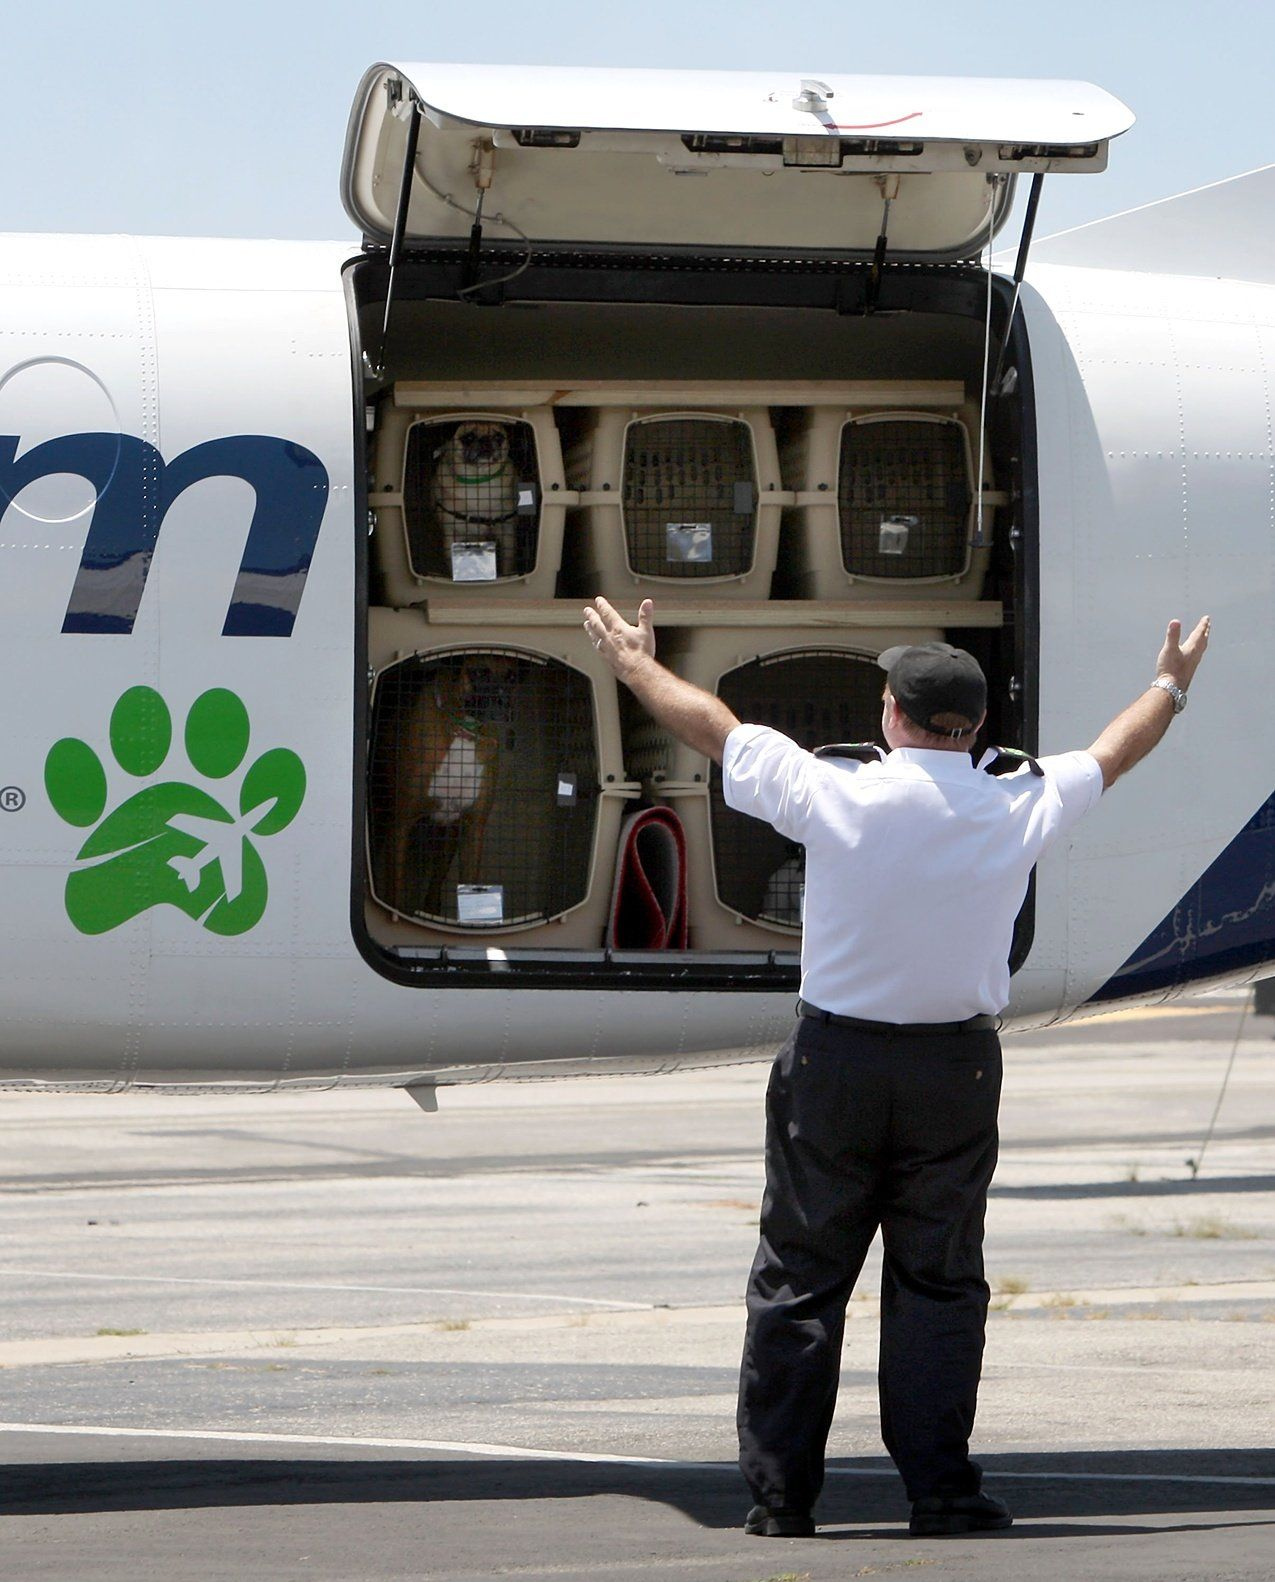 How Much is an Airline Ticket for Dogs? Dogs on planes